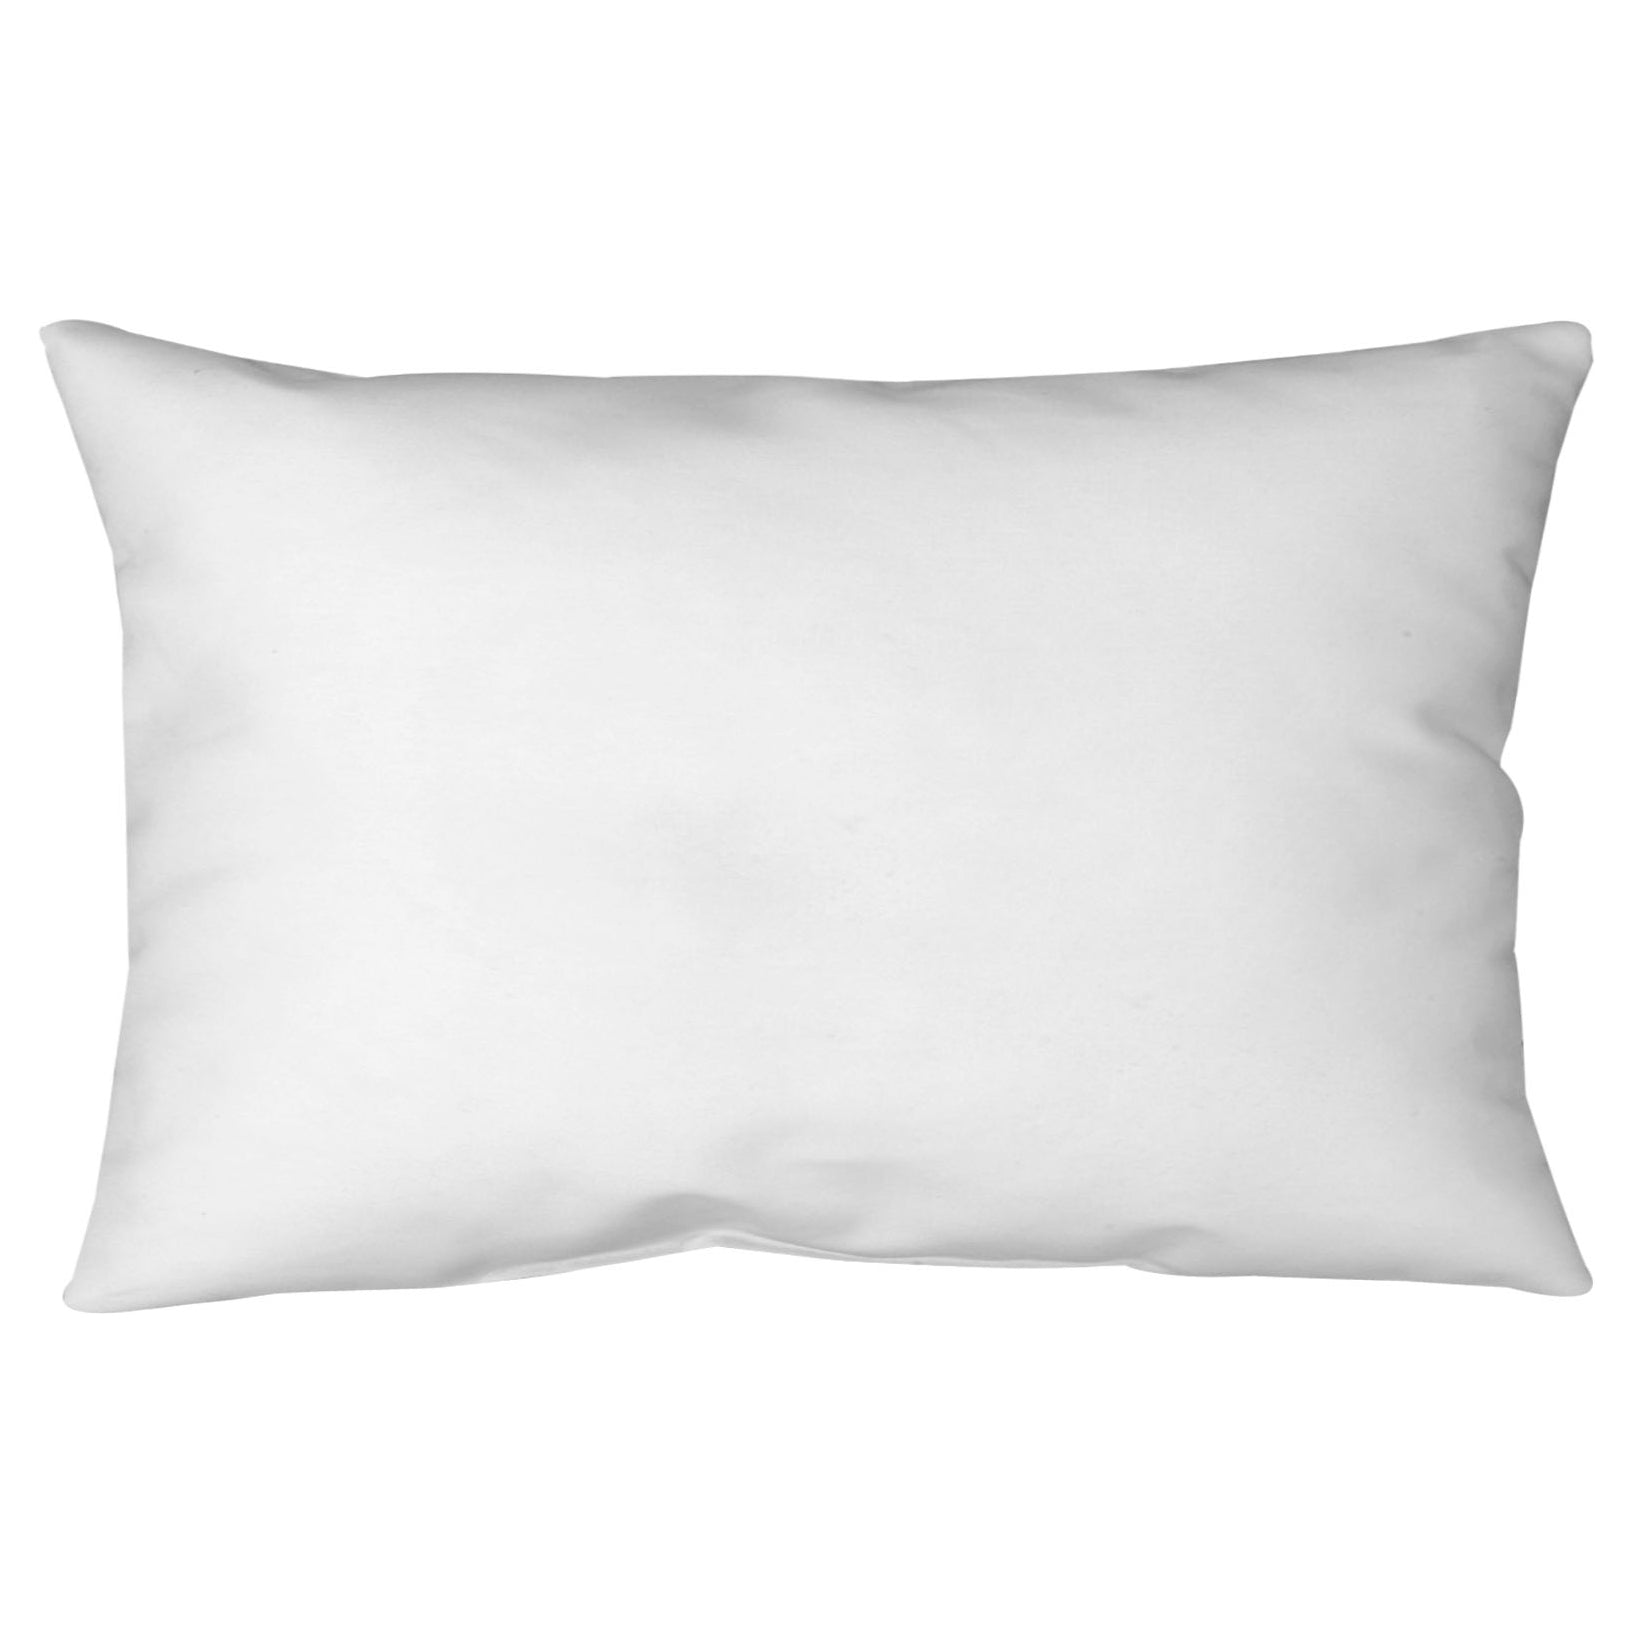 Custom Pillow, Rectangle Spun Polyester